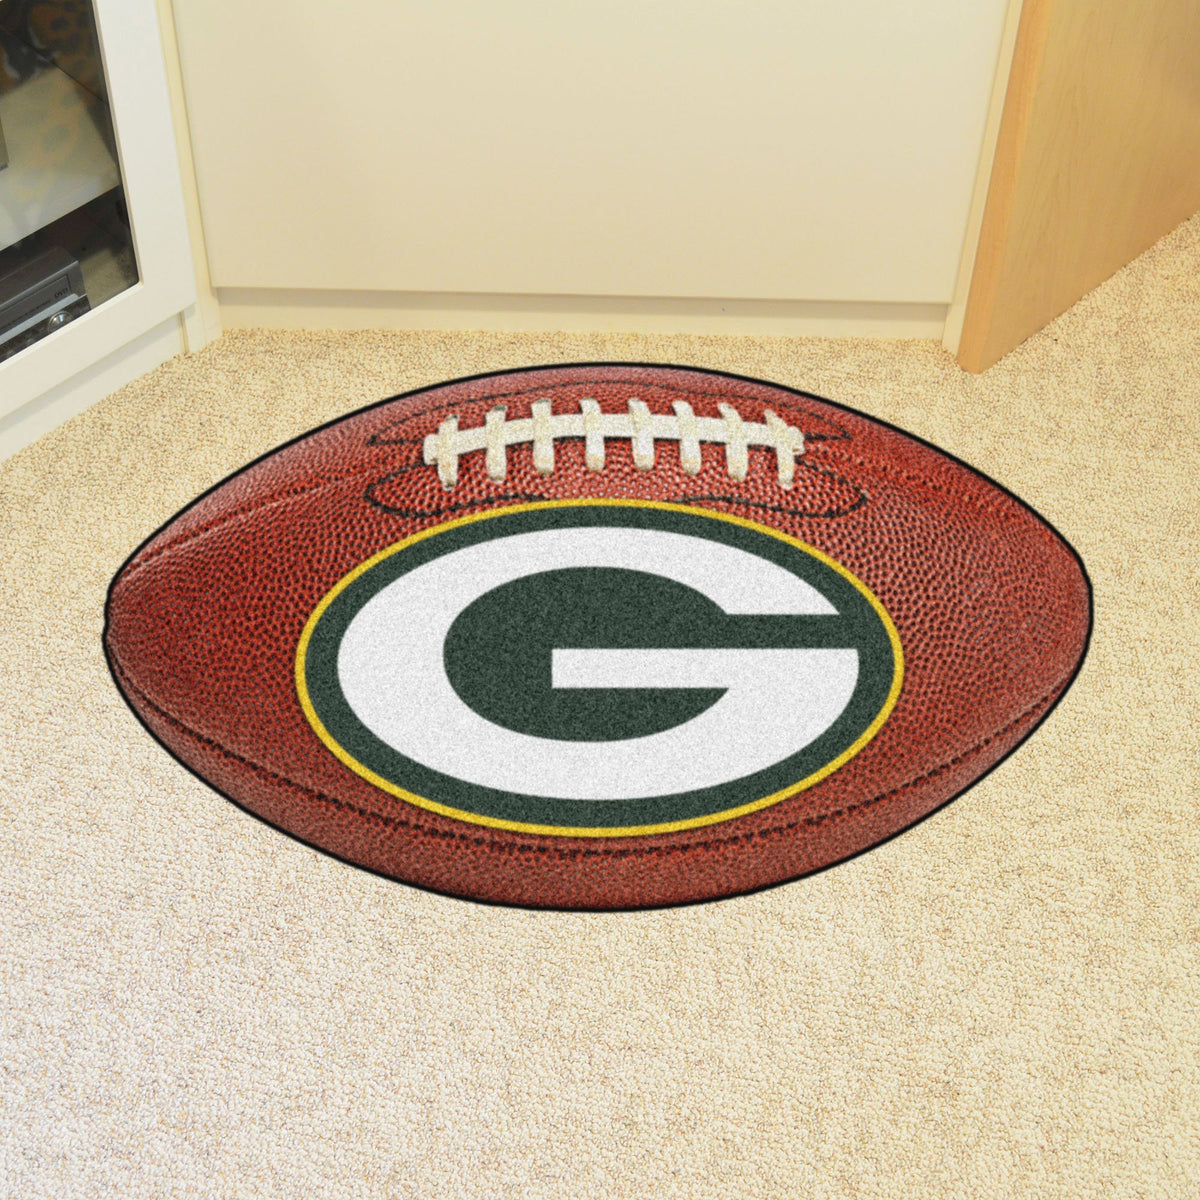 NFL - Football Mat NFL Mats, Custom Shape Rugs, Football Mat, NFL, Home Fan Mats Green Bay Packers